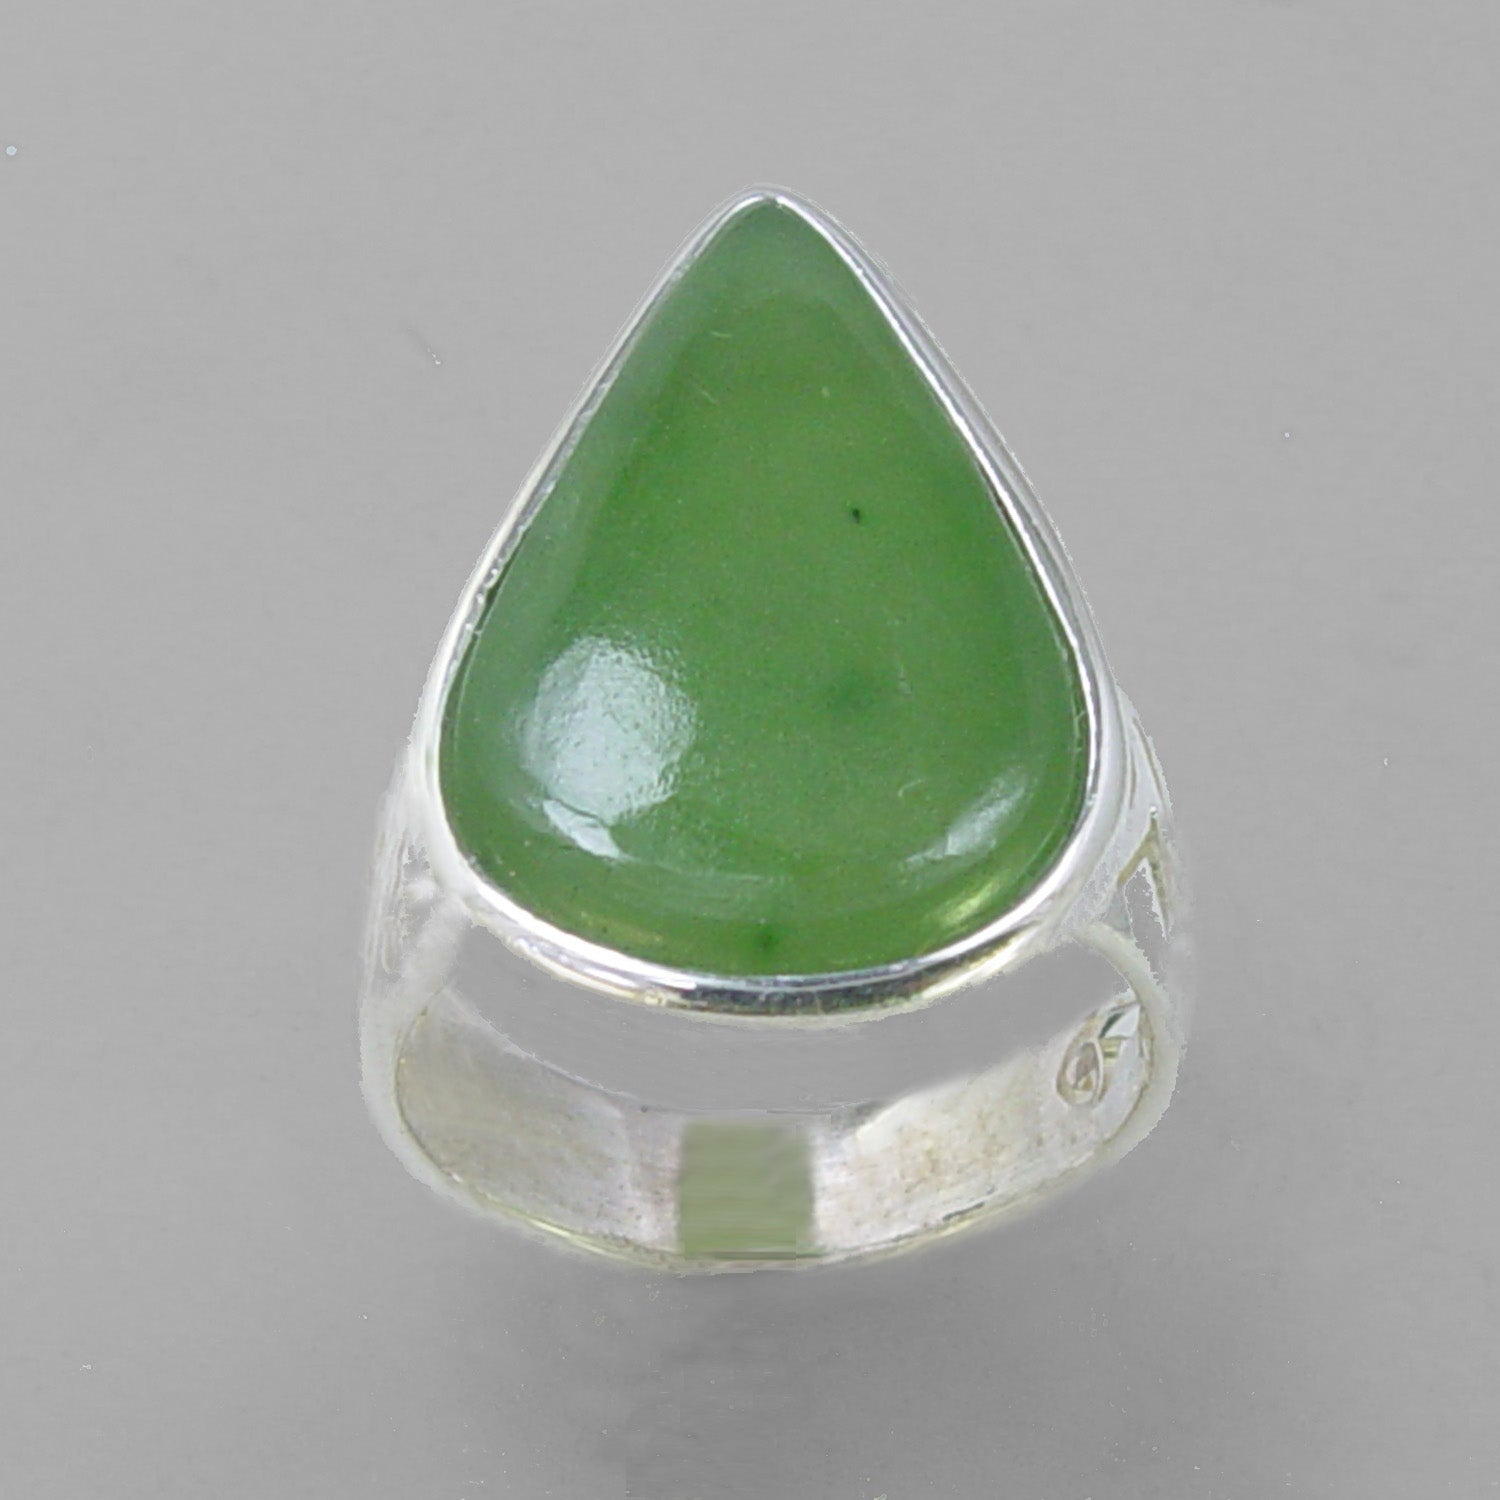 Jade 12 ct Pear Cab Bezel Set Sterling Silver Fancy Shank Ring, Size 6.75